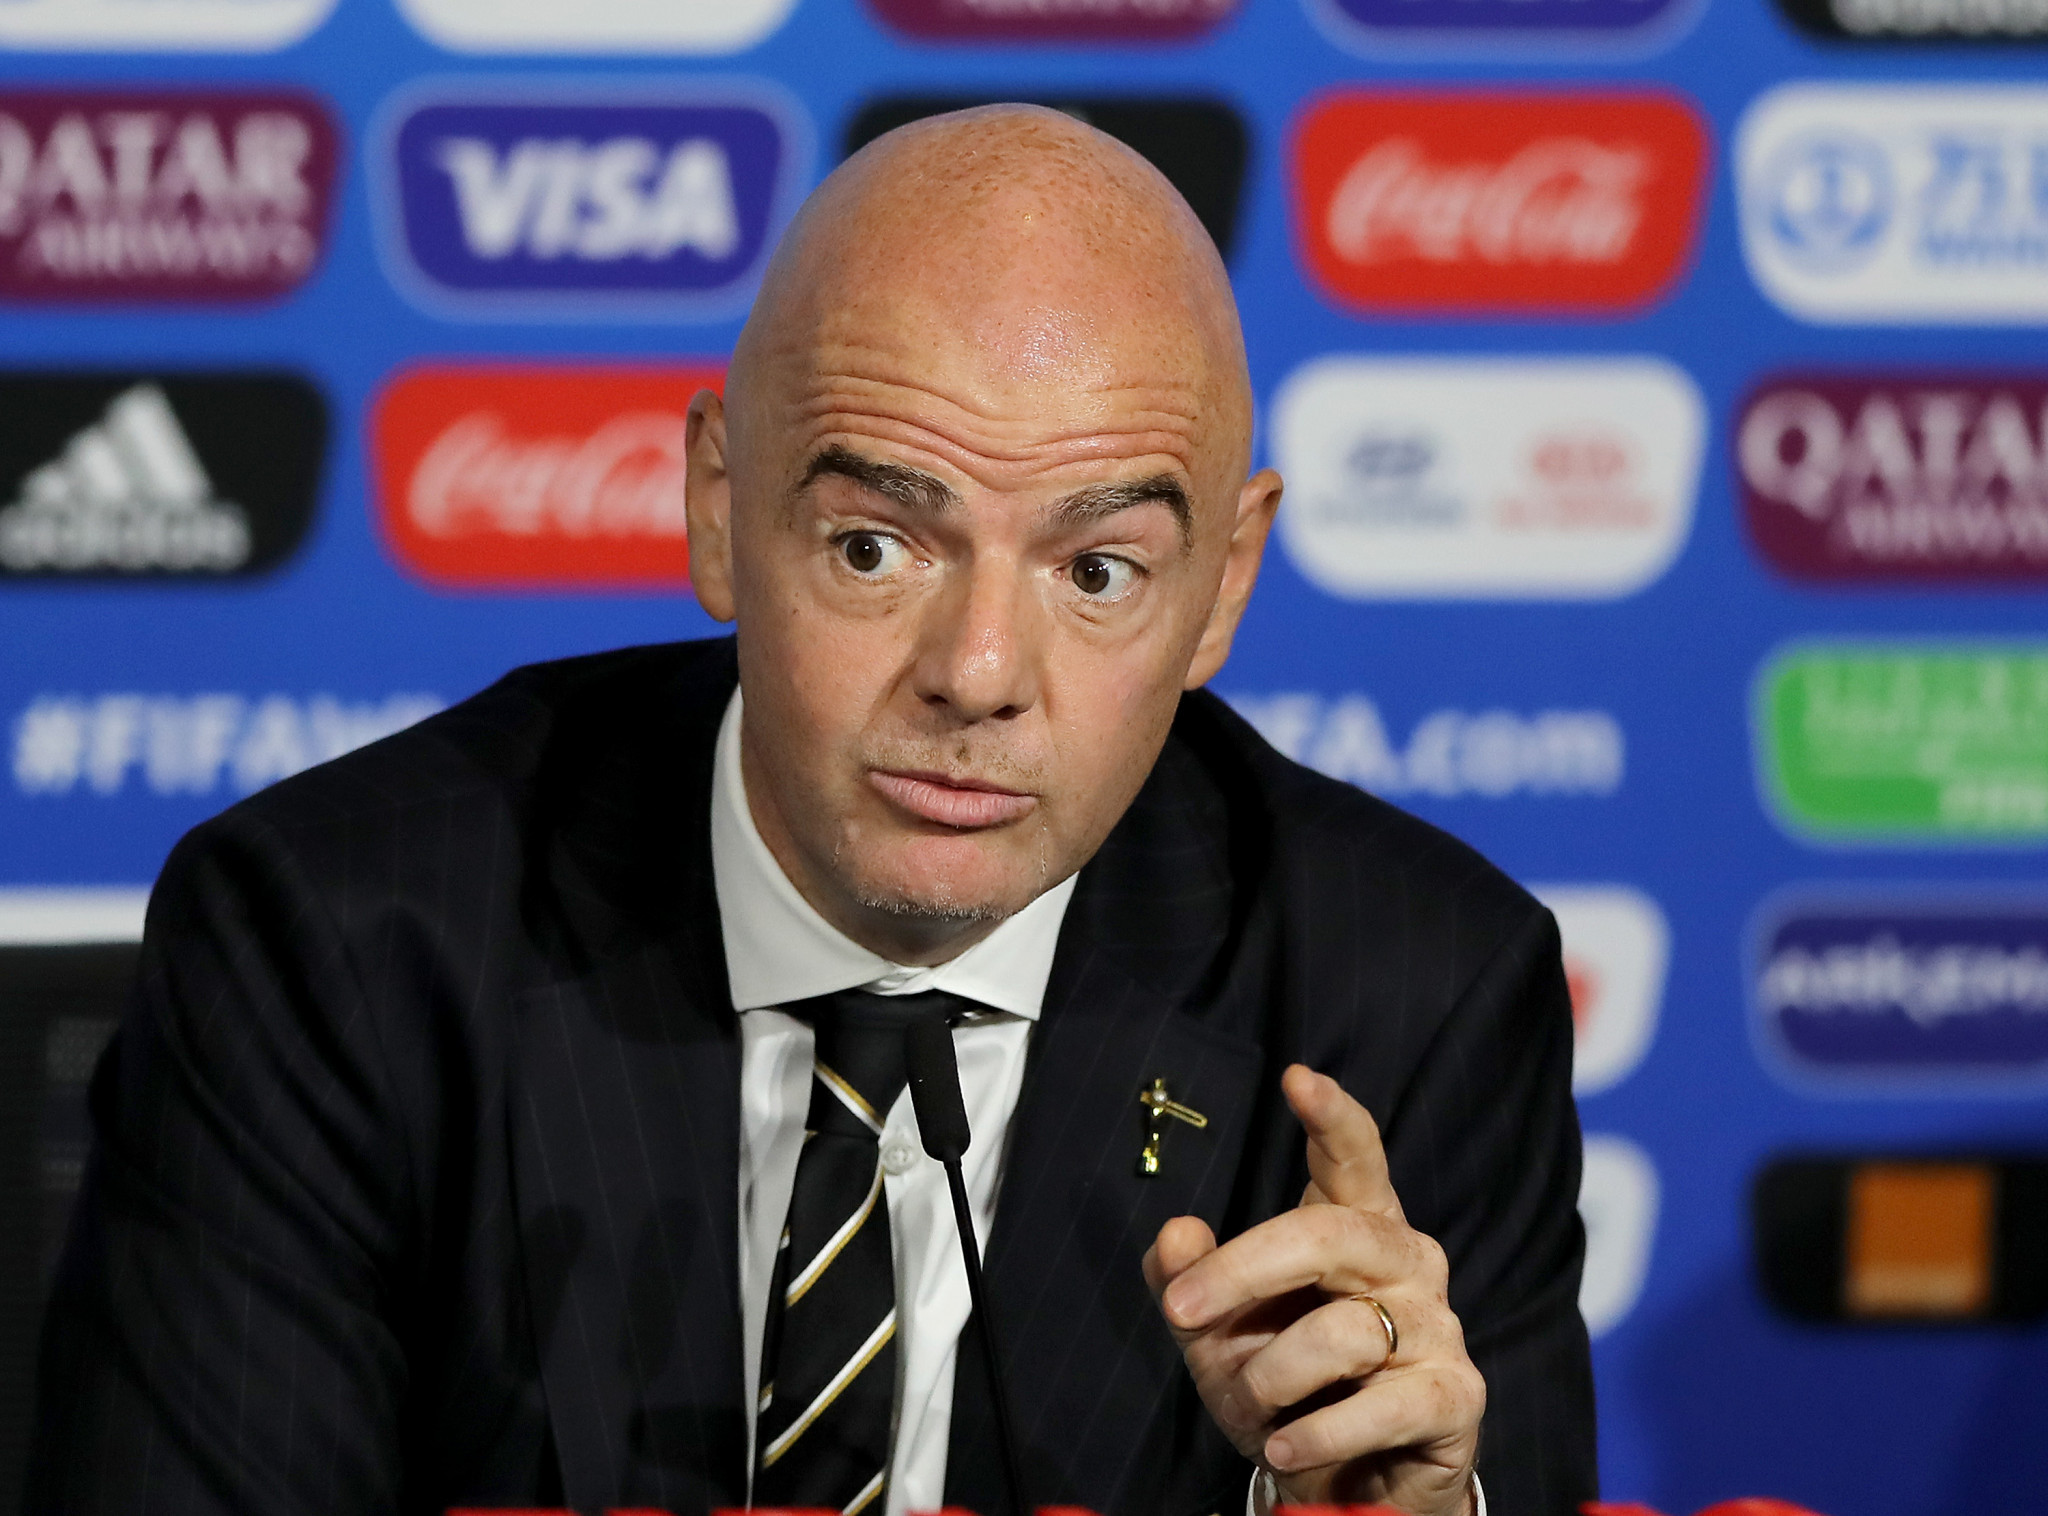 FIFA President Gianni Infantino wants to expand the number of teams at the Women's World Cup ©Getty Images